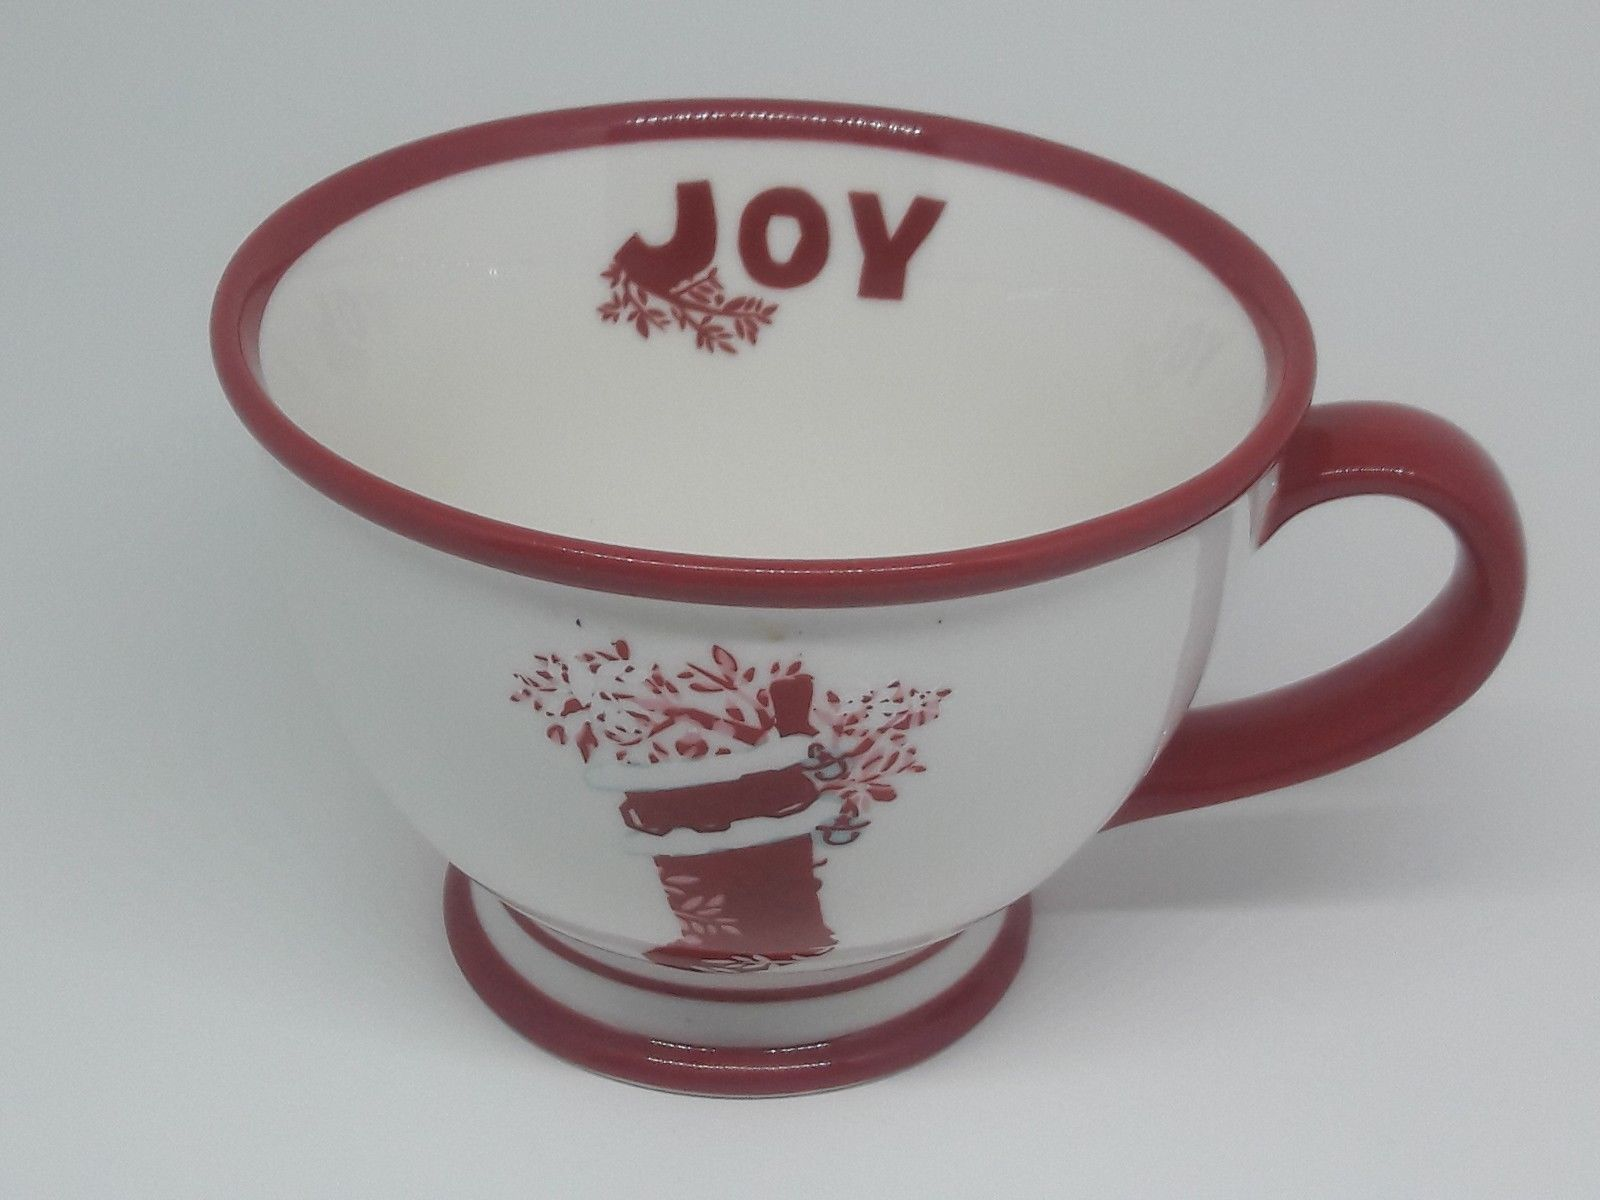 Primary image for Starbucks Coffee Holiday 2007 Off White Red Christmas Stocking Joy Mug Cup 10 oz